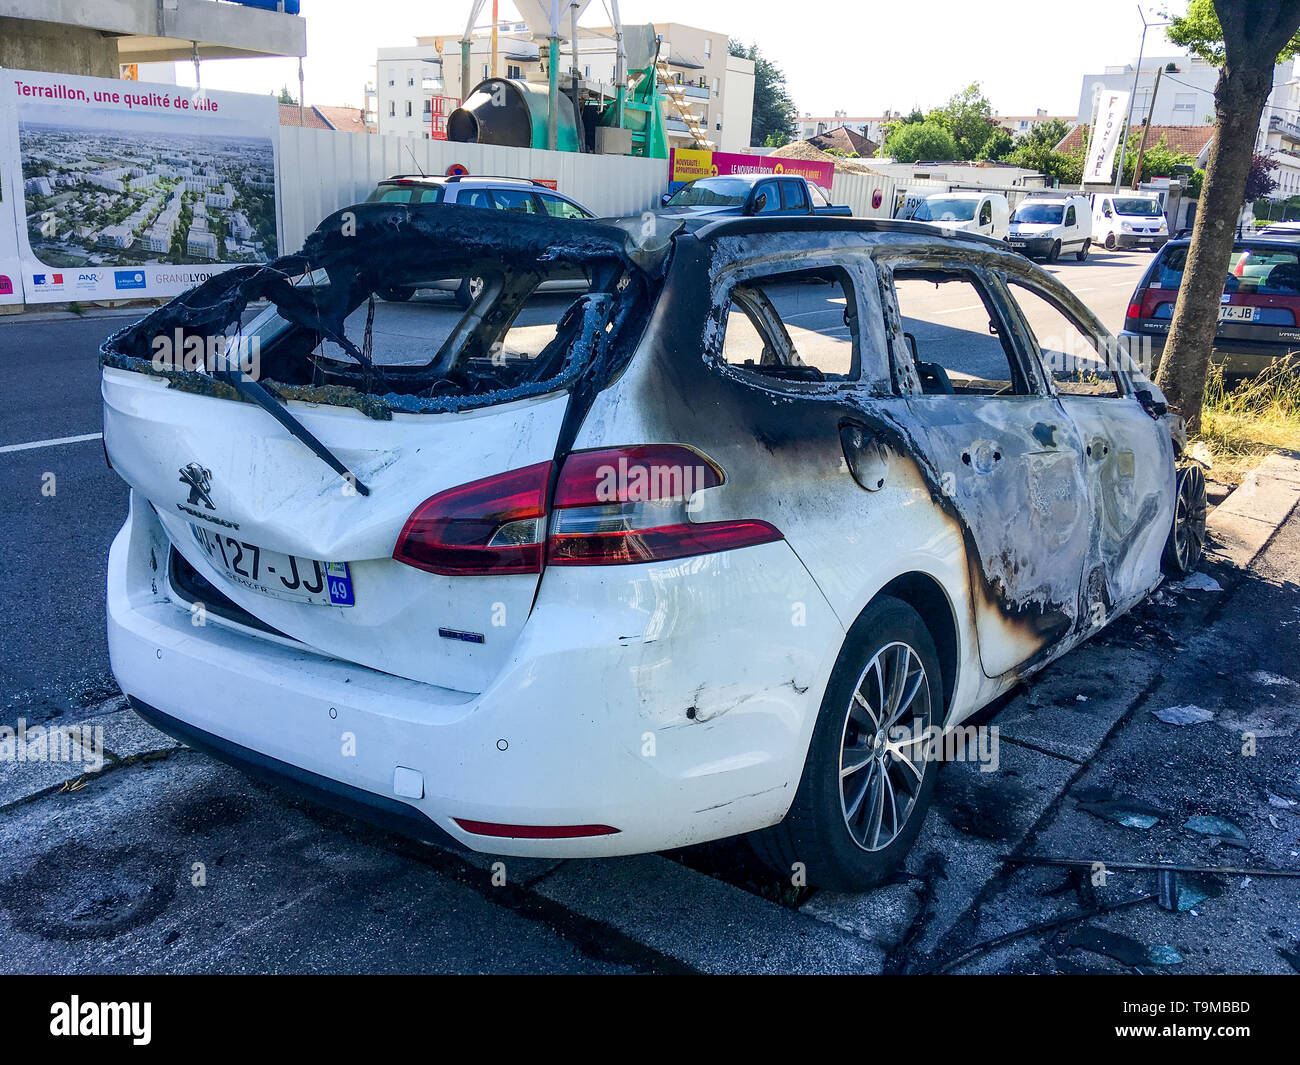 Street view, A burned car parked along a sidewalk, Bron, France - Stock Image